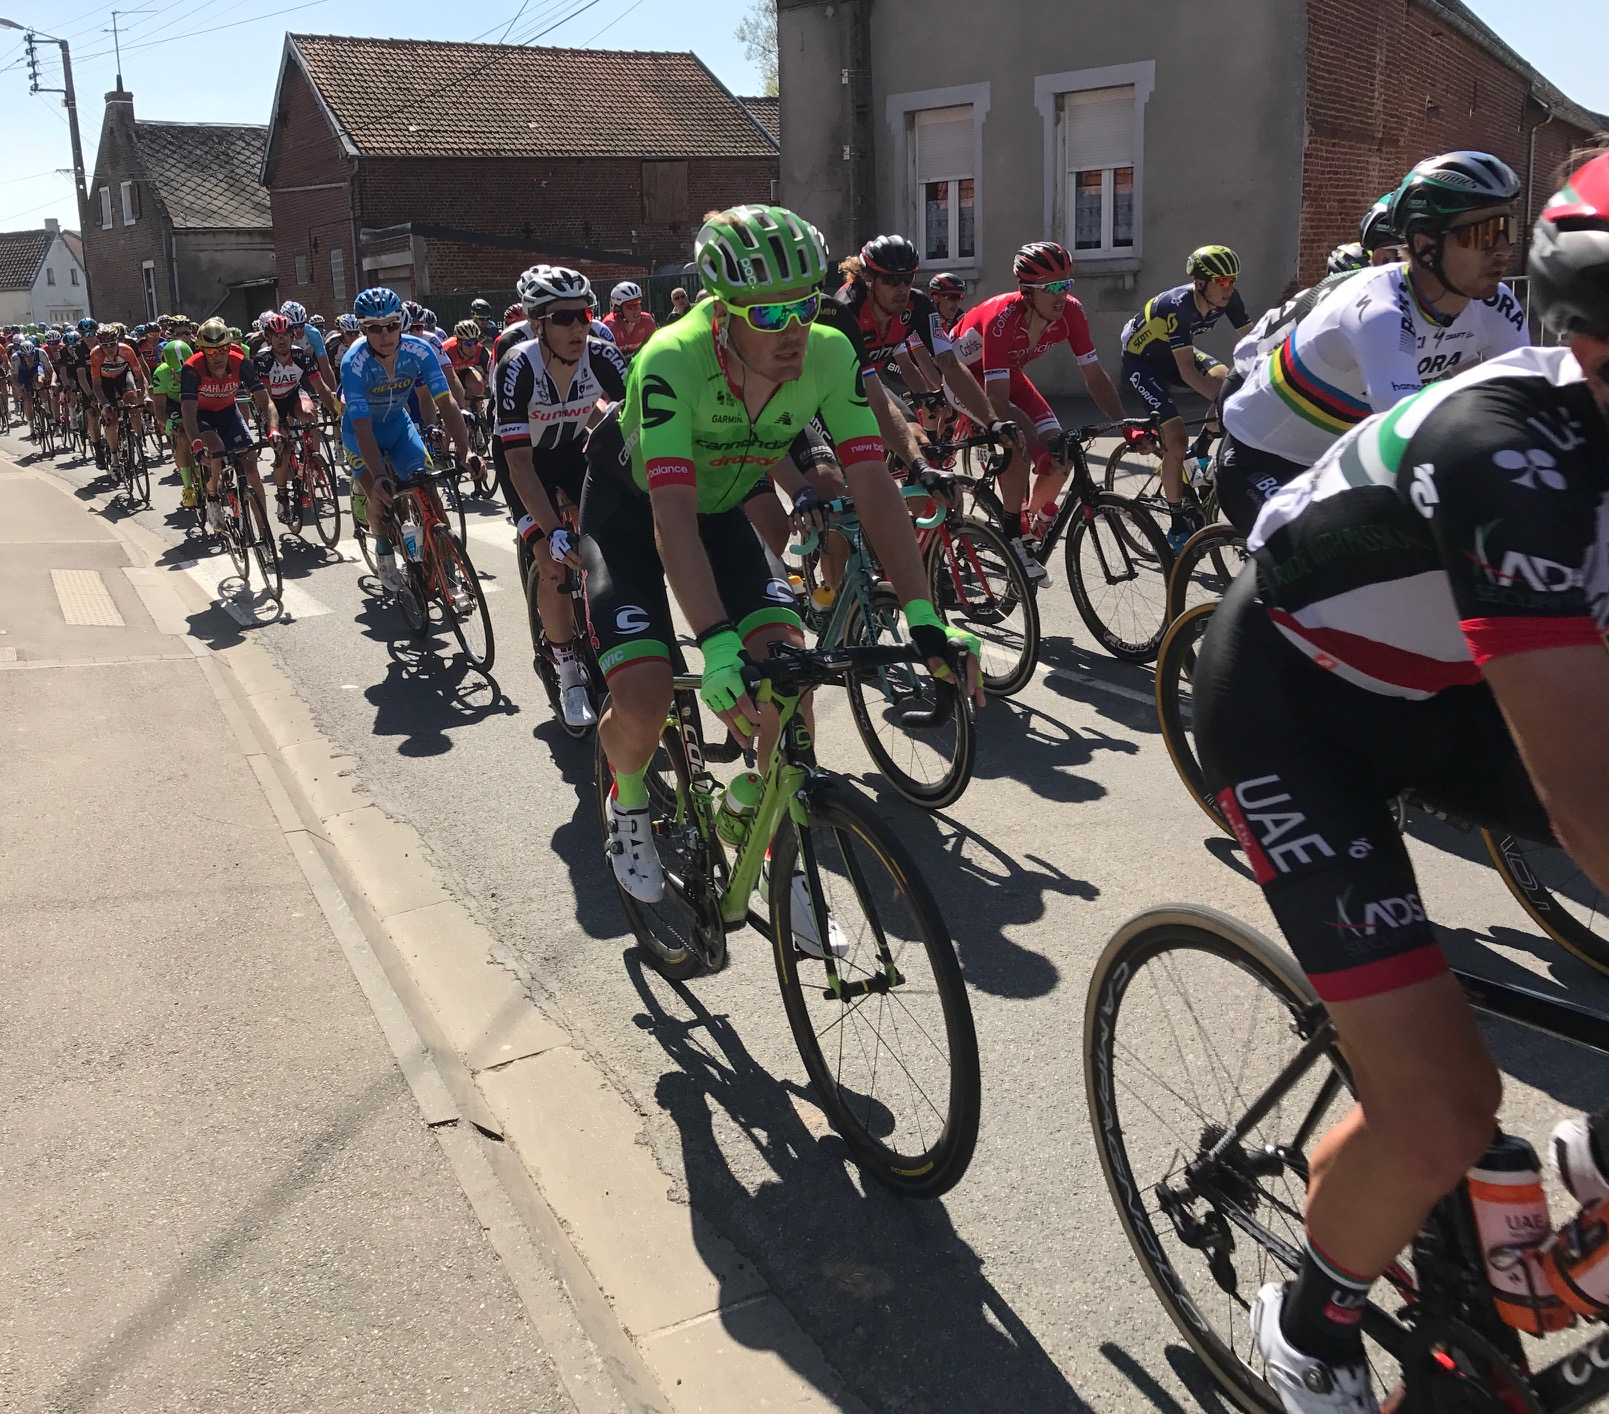 Paris Roubaix 17 - The BiciSport team headed for the small village of Viesly near Solesmes and the PR peloton entered from one side of the village then headed off towards the Quivey cobbles only to return to the other side of Viesly some 20 minutes later .